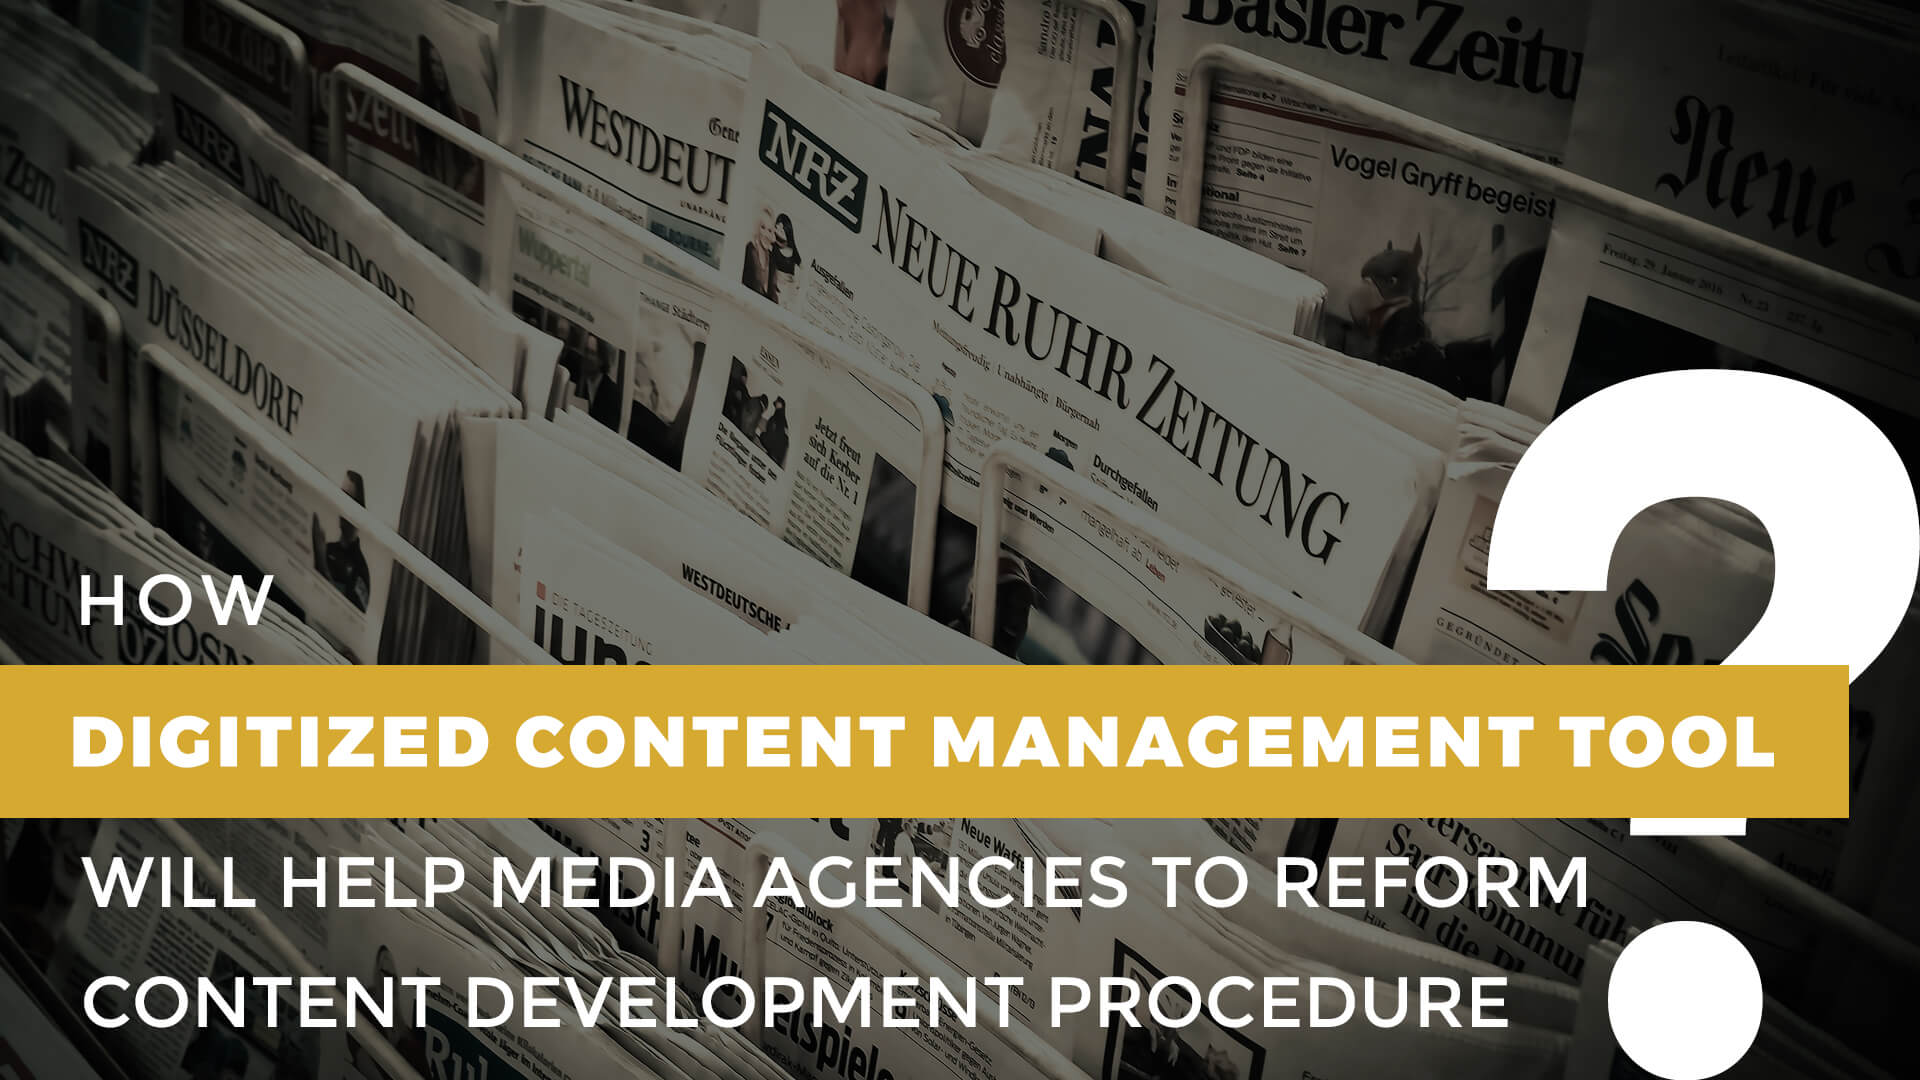 How Digitized Content Management Tool Will Help Media Agencies to Reform Content Development Procedure - Trootech